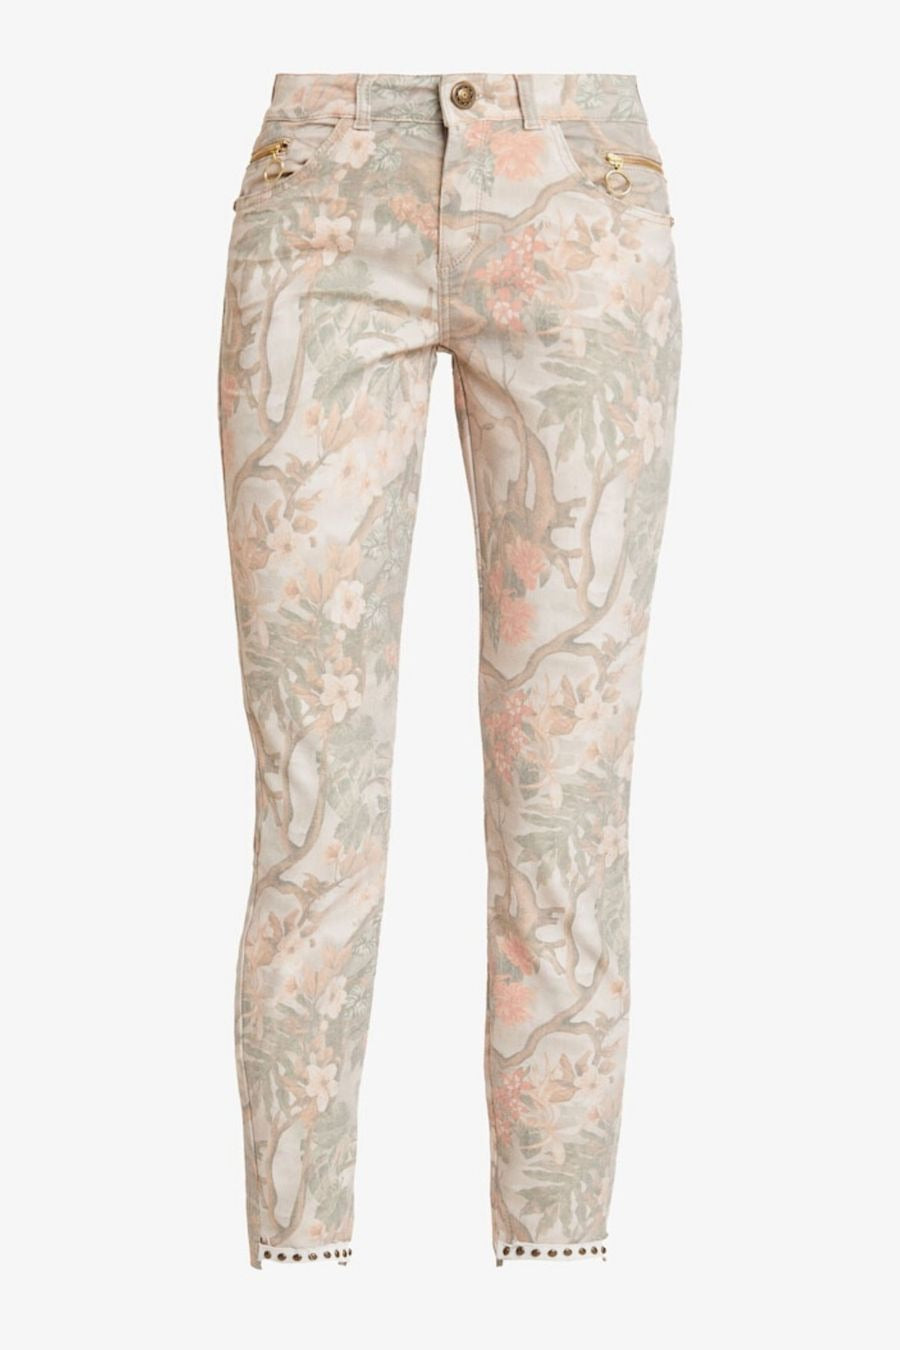 Sumner Rio Ankle Pant